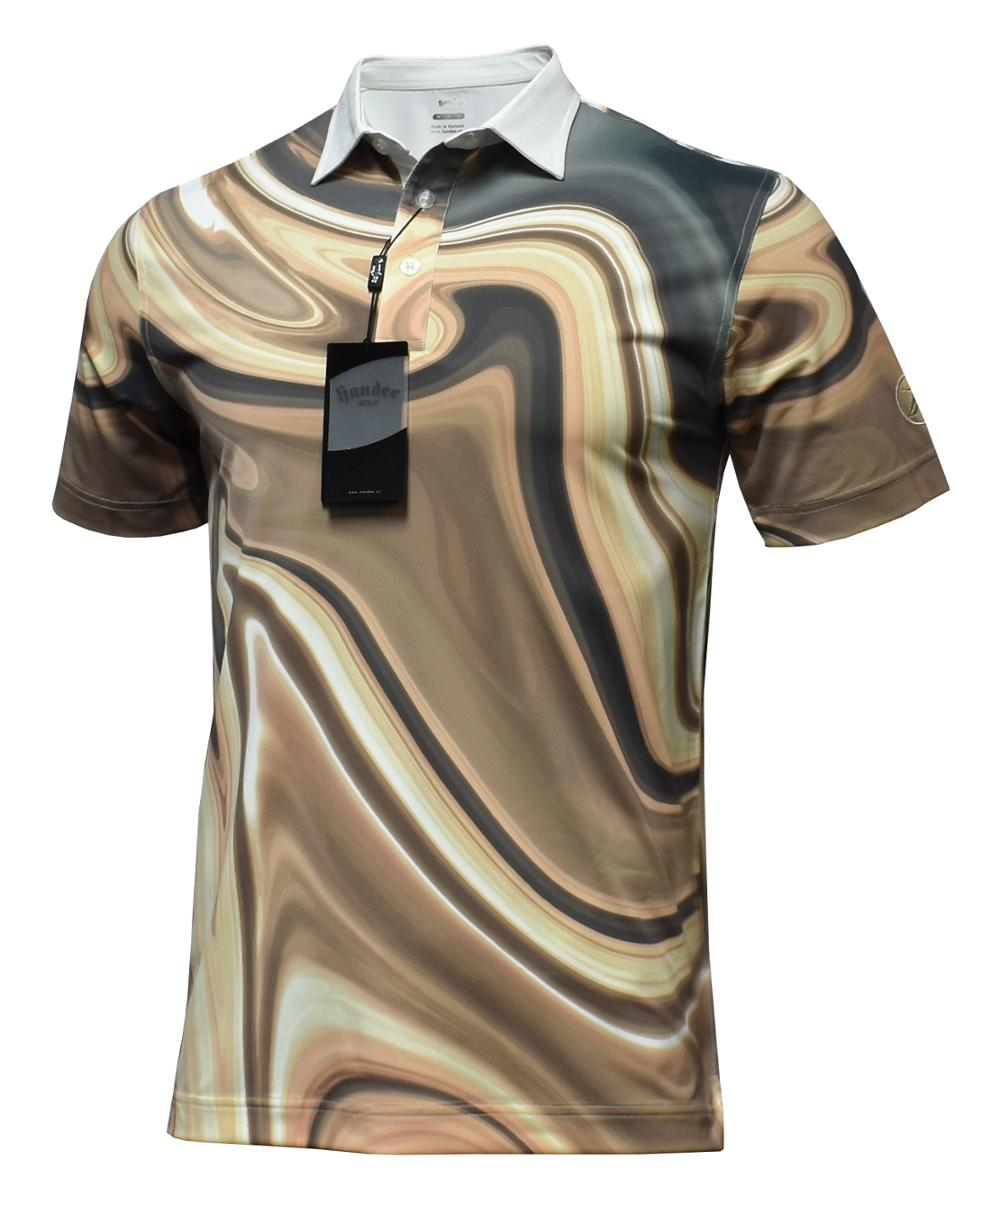 New Design Polo Shirt Lightweight Polyester Spandex Custom Sport Golf Sublimation T Shirt 2018